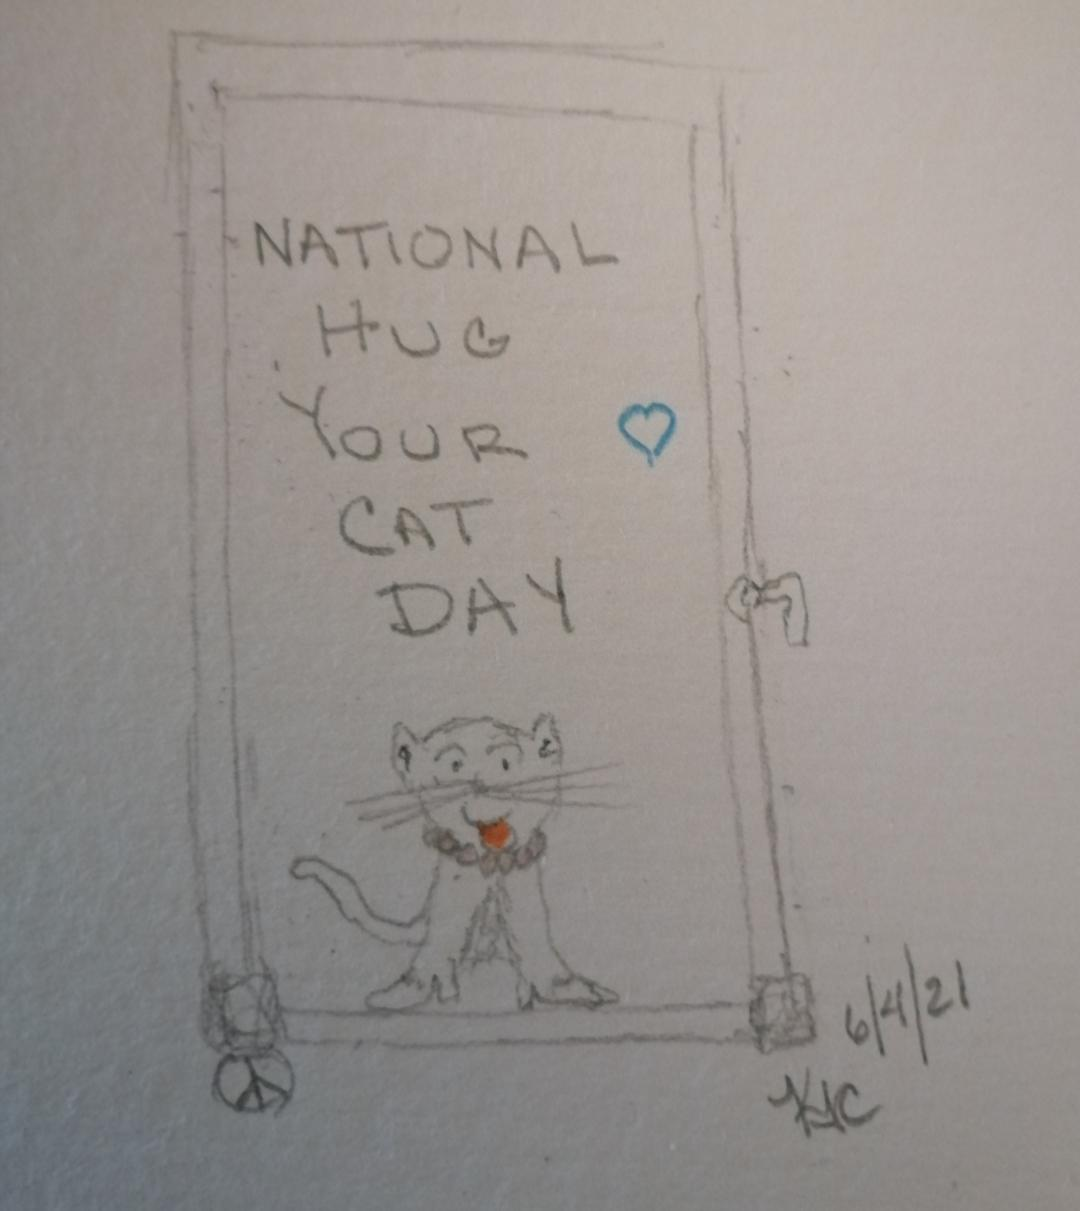 My Cat And National Hug Your Cat Day © ~ Katrina Curtiss 6/4/21